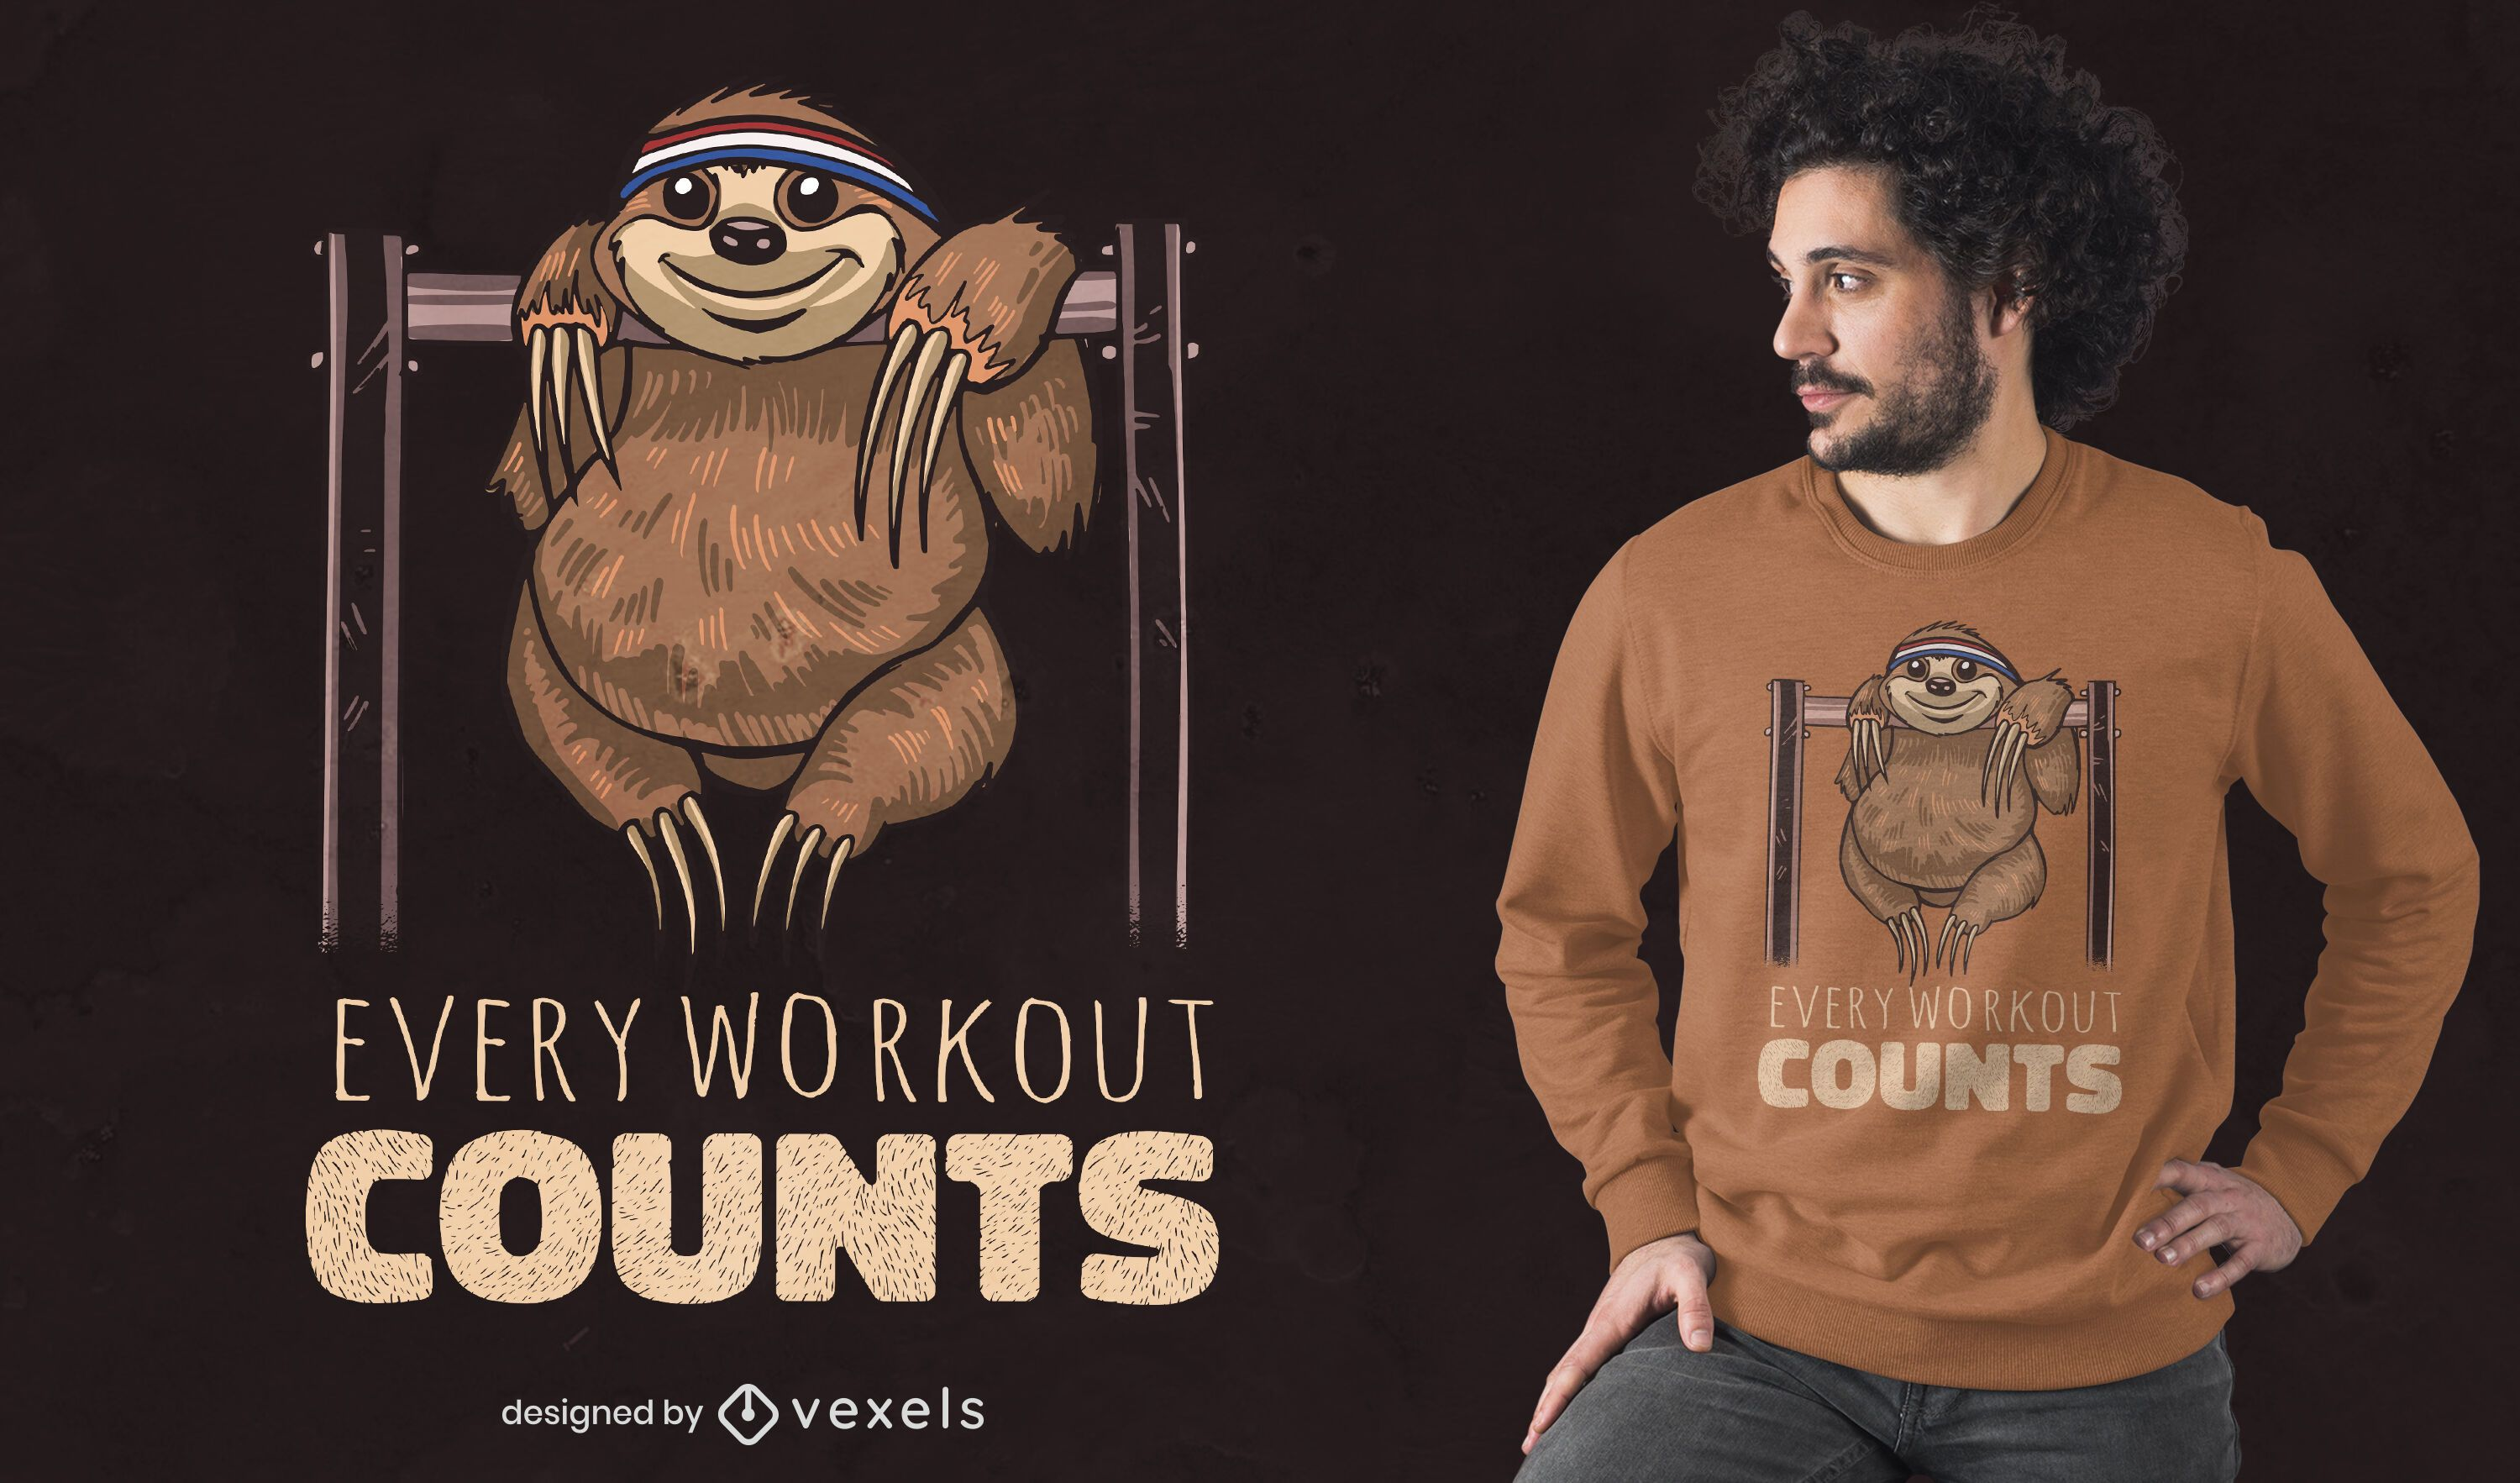 Every workout counts t-shirt design